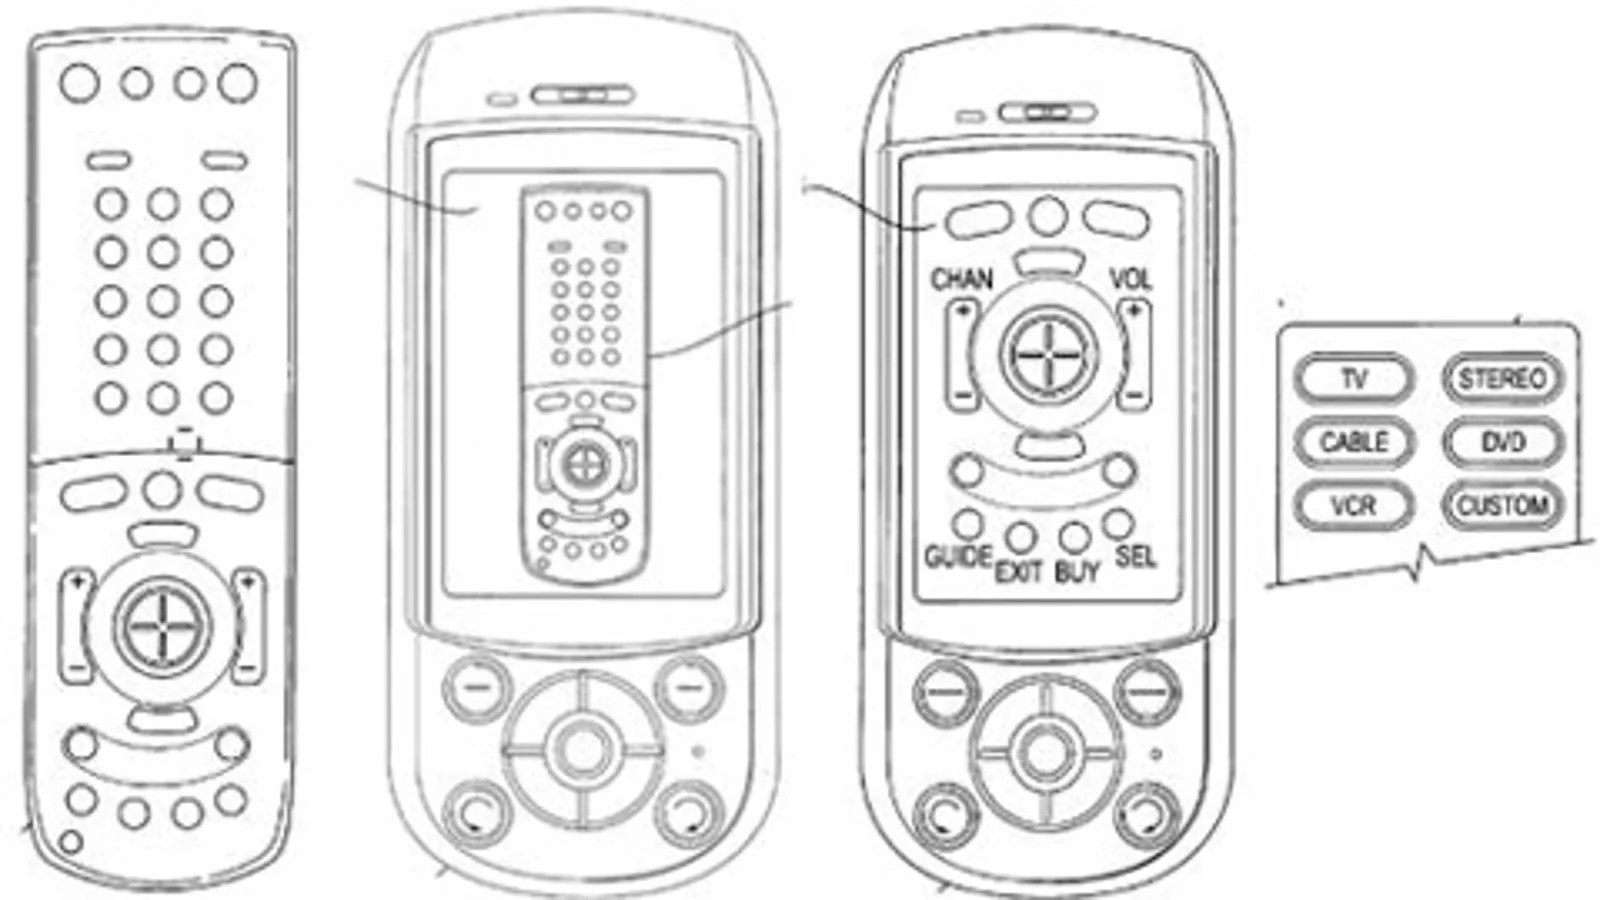 Sony Ericsson's Next Cell Phone to Double as a Remote Control?